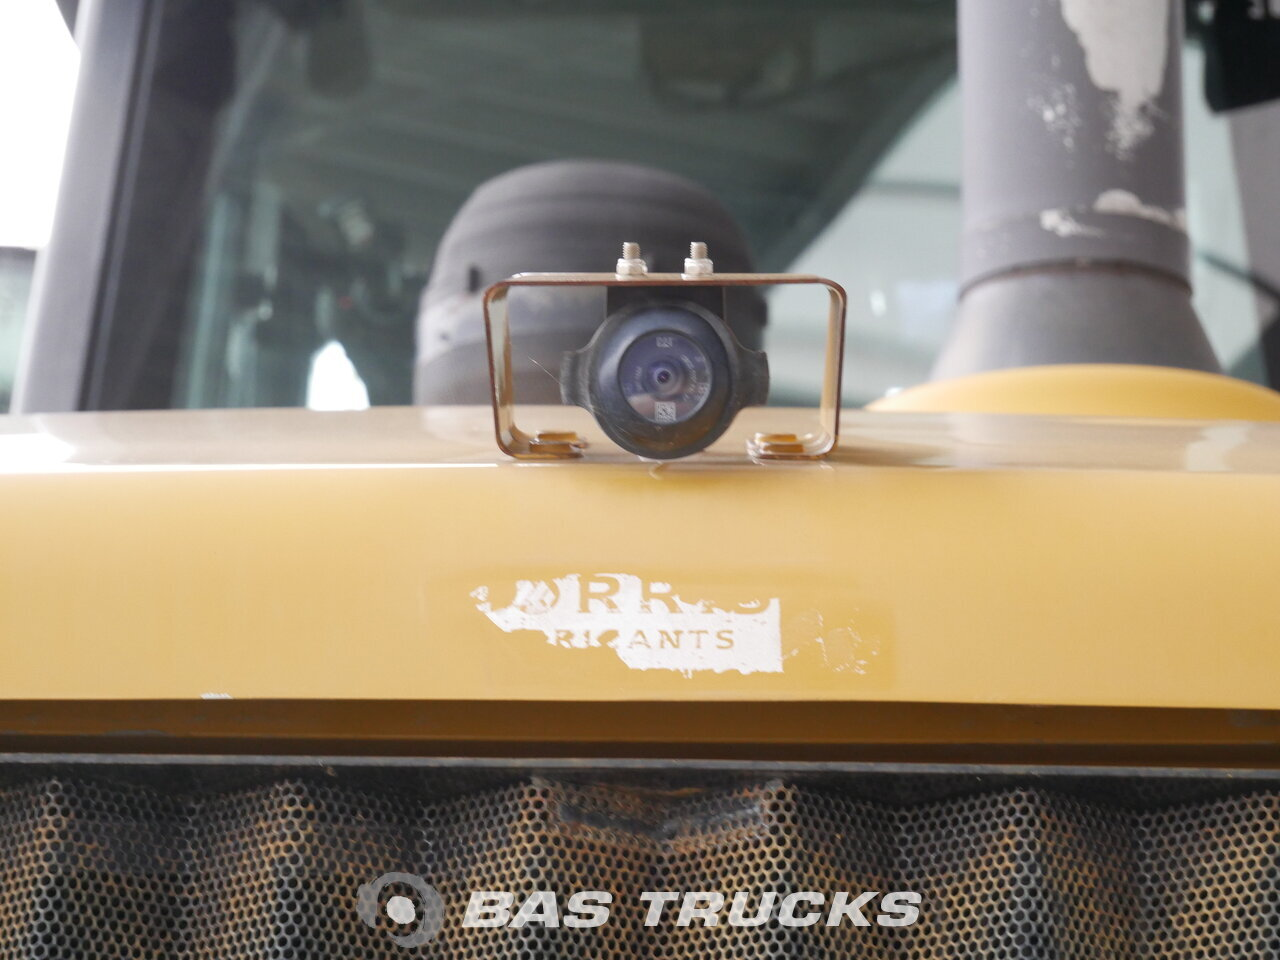 للبيع في BAS Trucks: Caterpillar 950H 4X4 01/2011